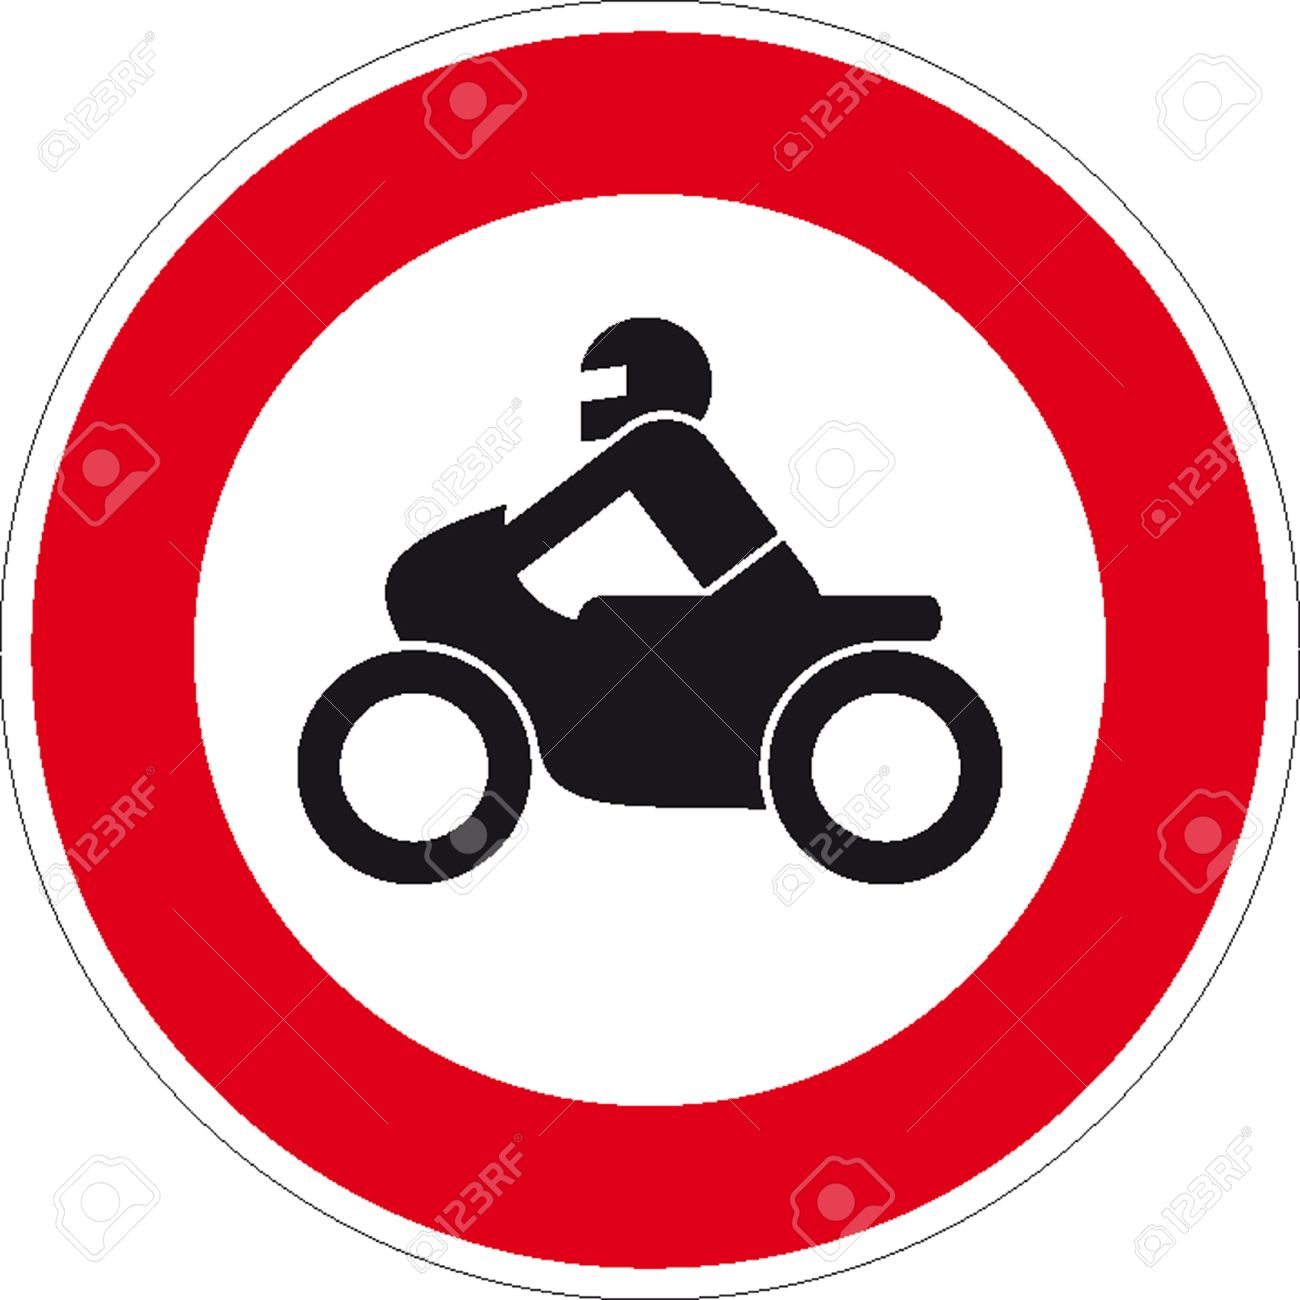 traffic signs Stock Vector - 10647902